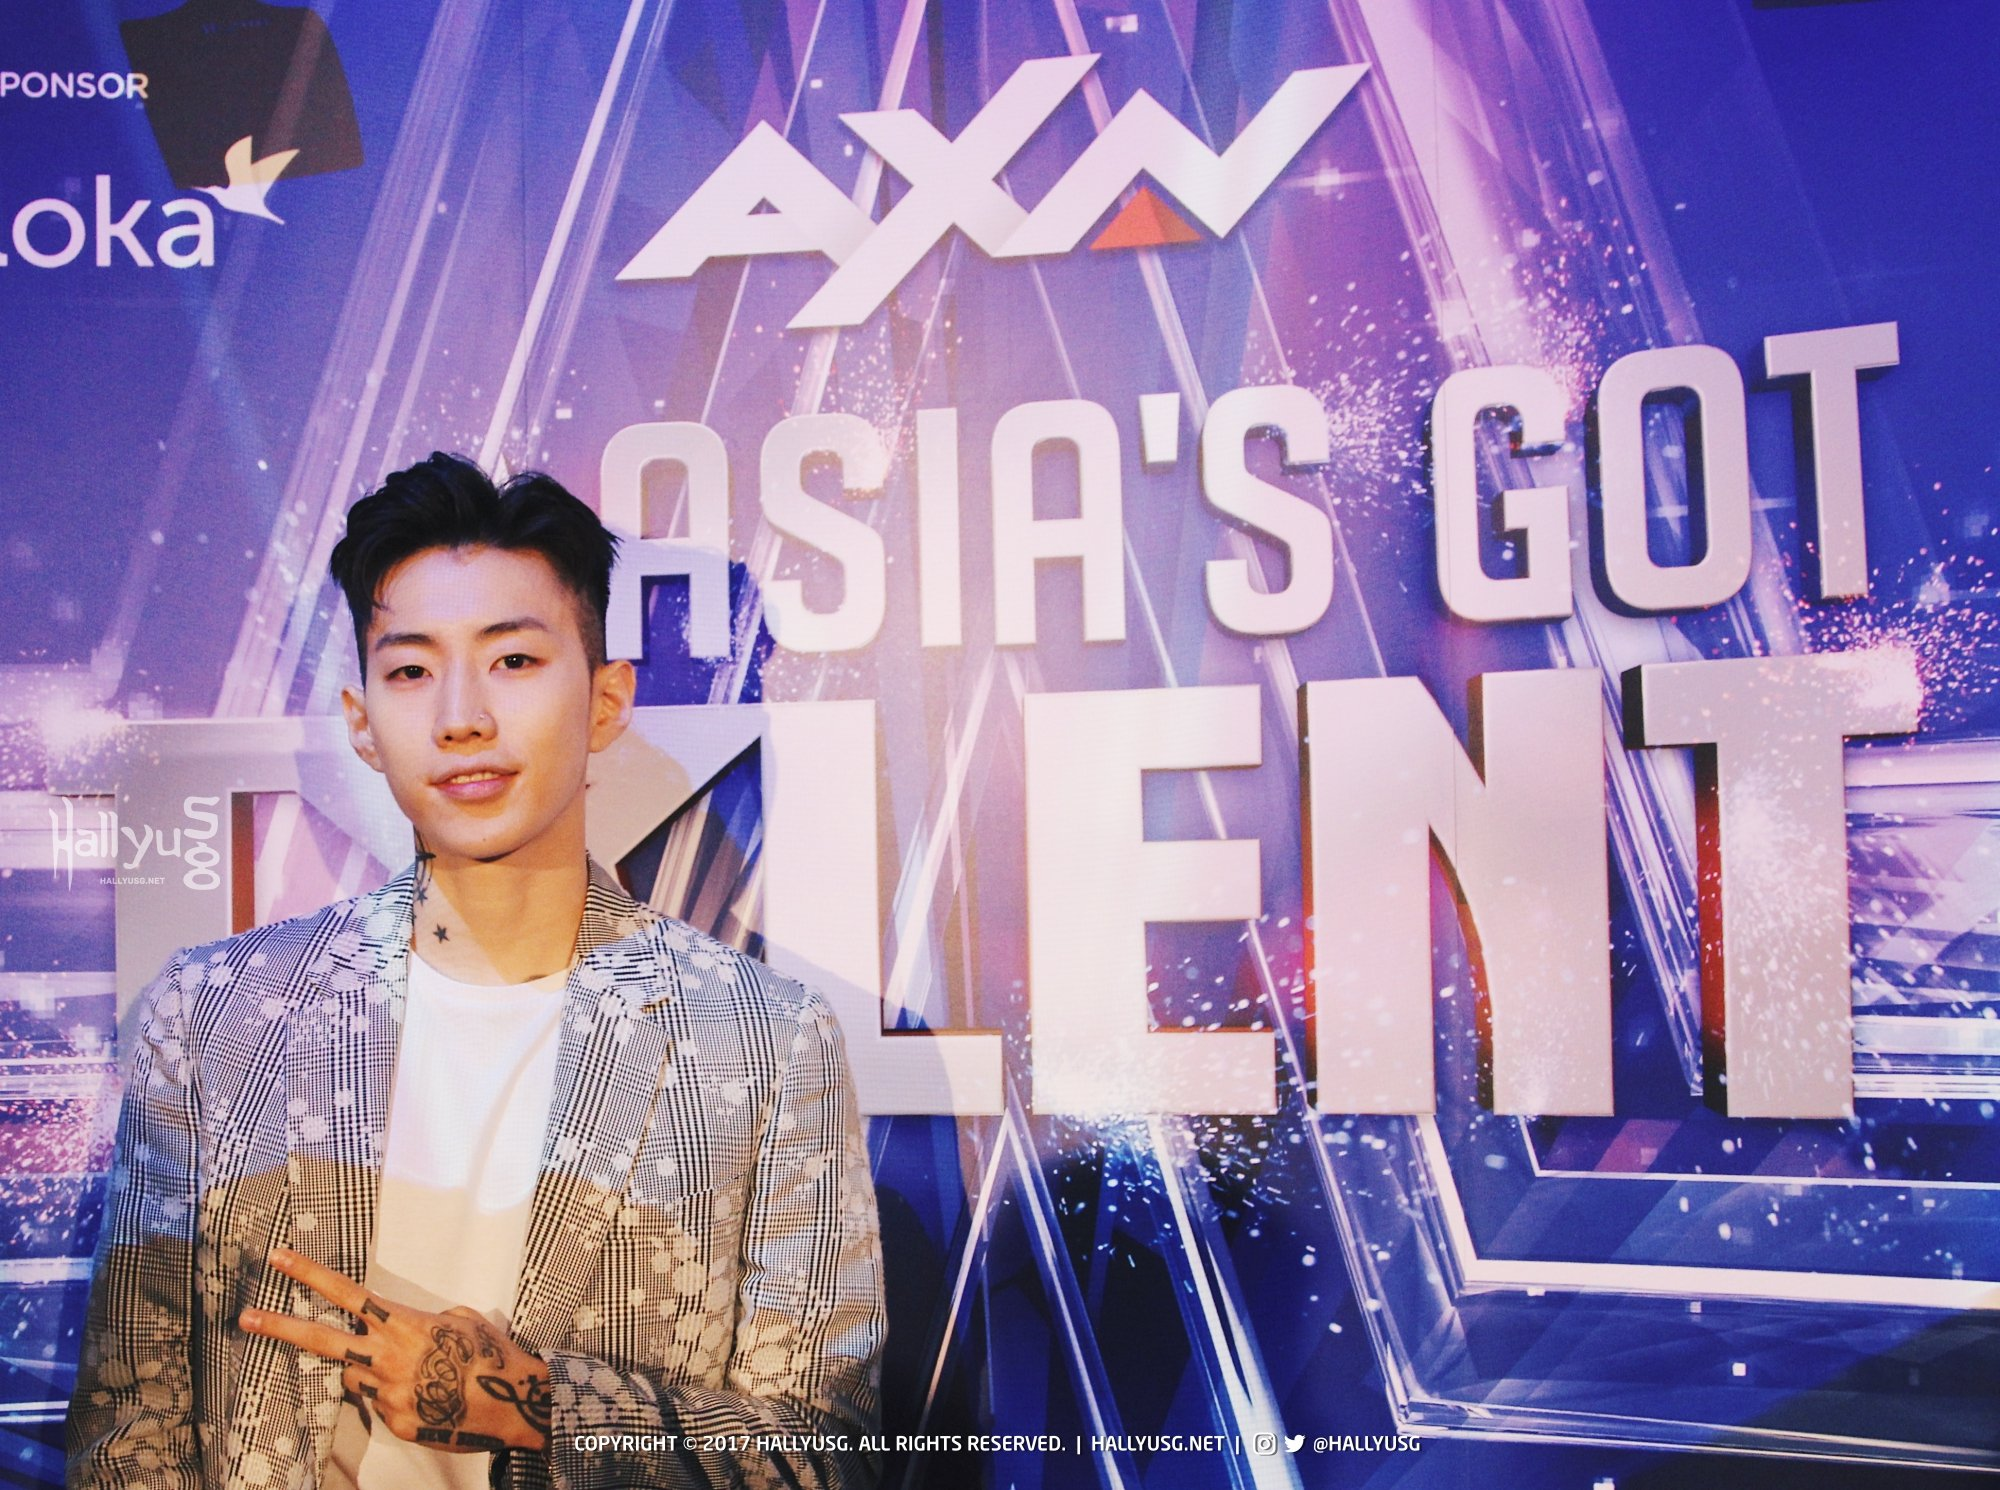 season 2 of asia s got talent will be premiering on axn in october this year the series hosted by singapore based actors alan wong and justin